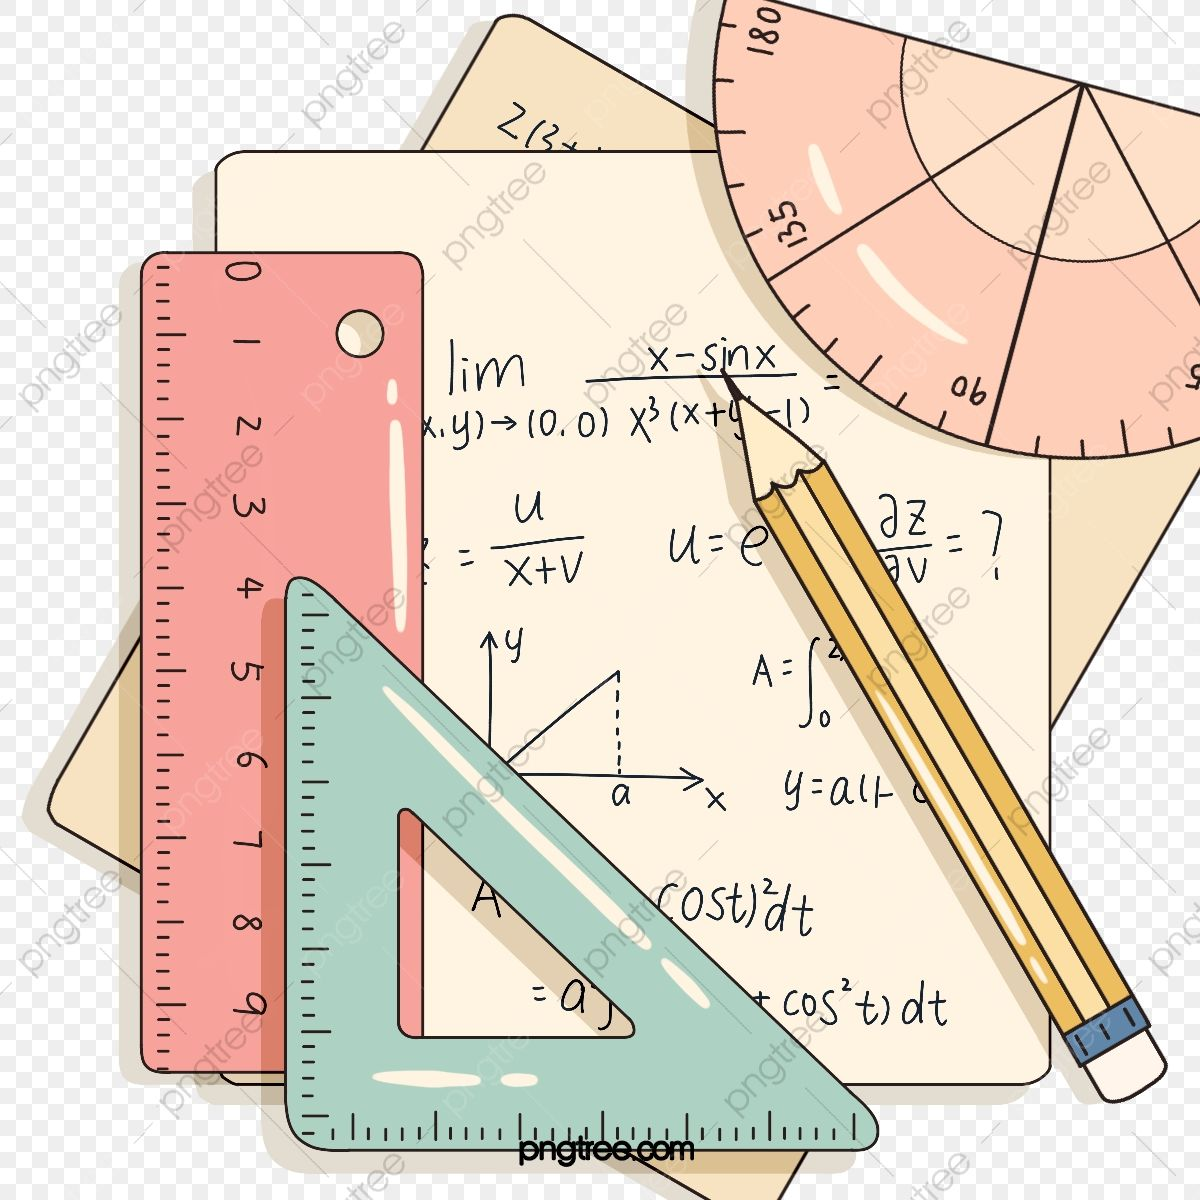 Hand Drawn Style Math Stationery Elements Math Clipart Mathematics Draft Png Transparent Clipart Image And Psd File For Free Download Math Clipart Math Wallpaper Math Photos